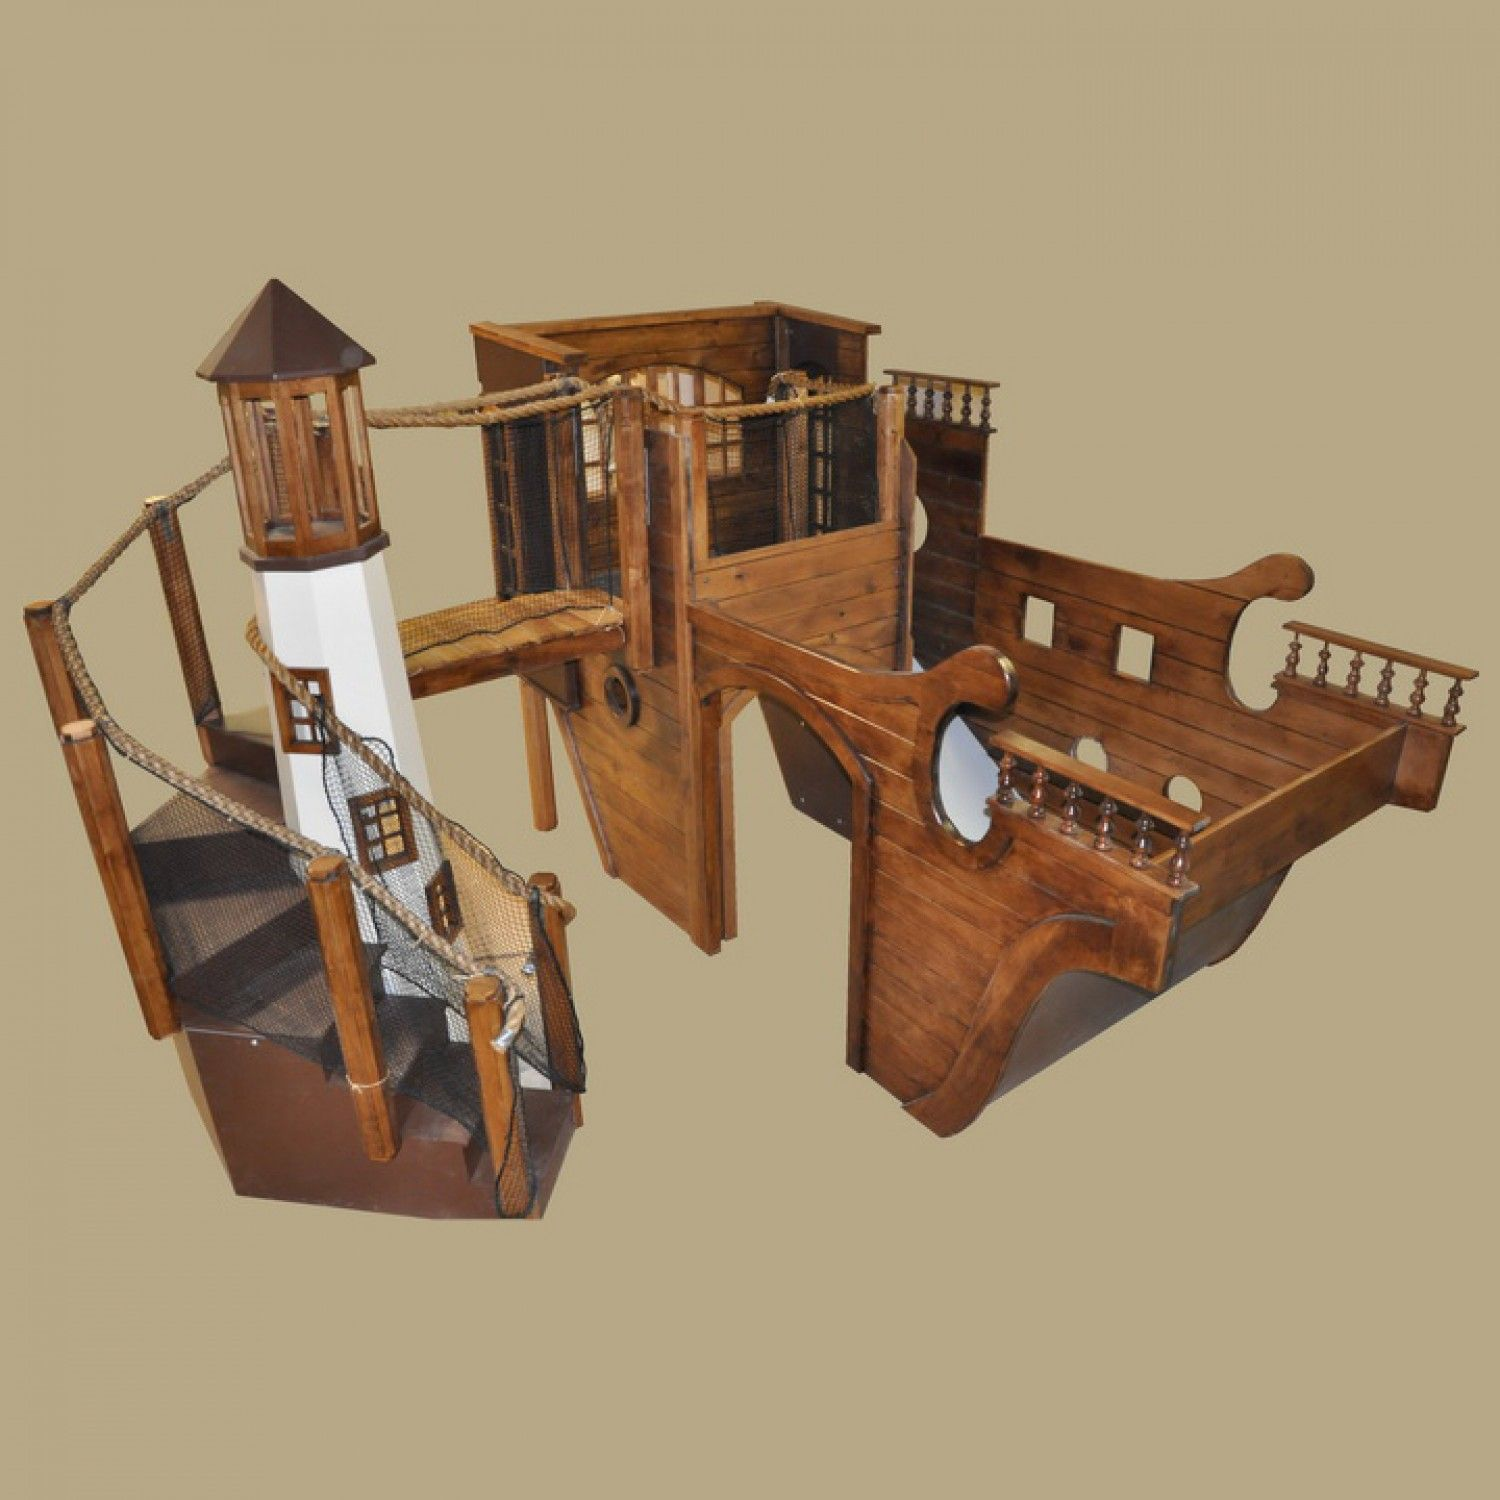 Wooden Pirate Ship Indoor Playhouse w\' Light House. This site also ...